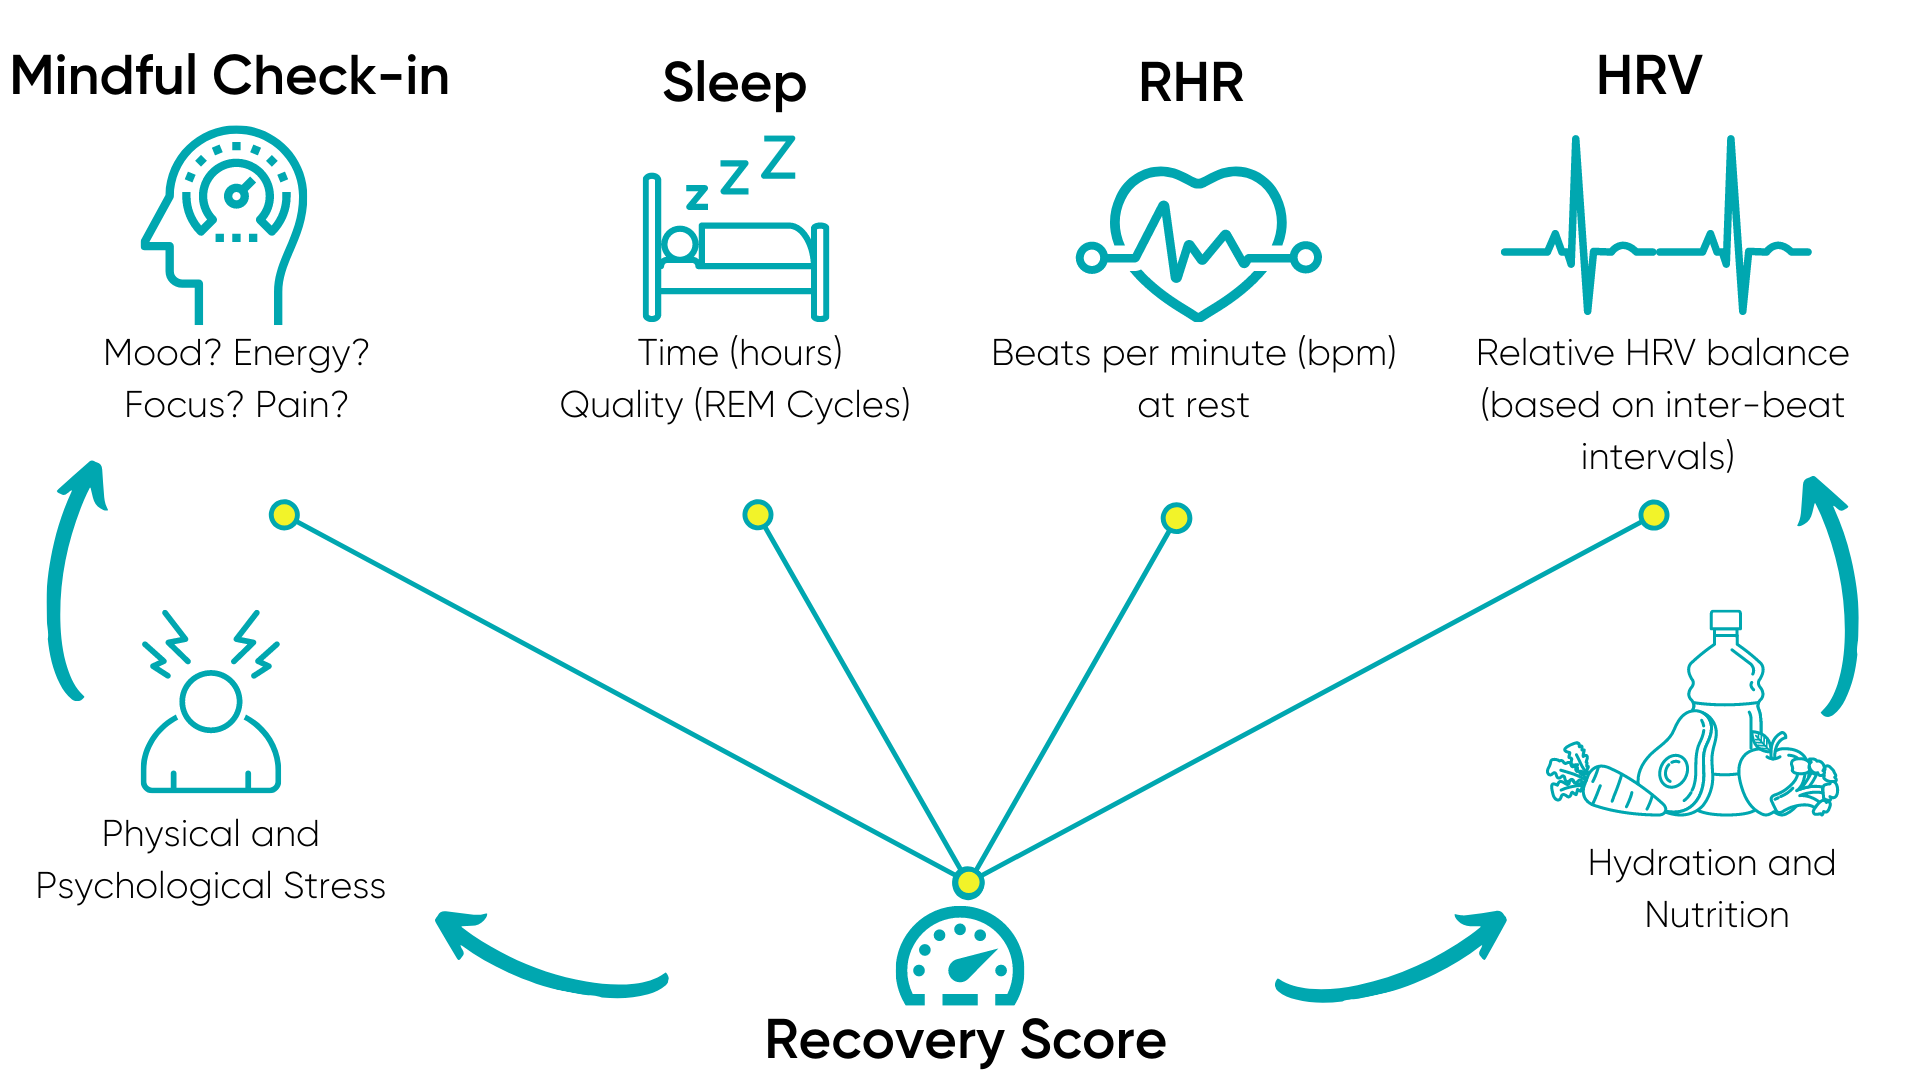 Multi-trait Multi-method Approach to Recovery